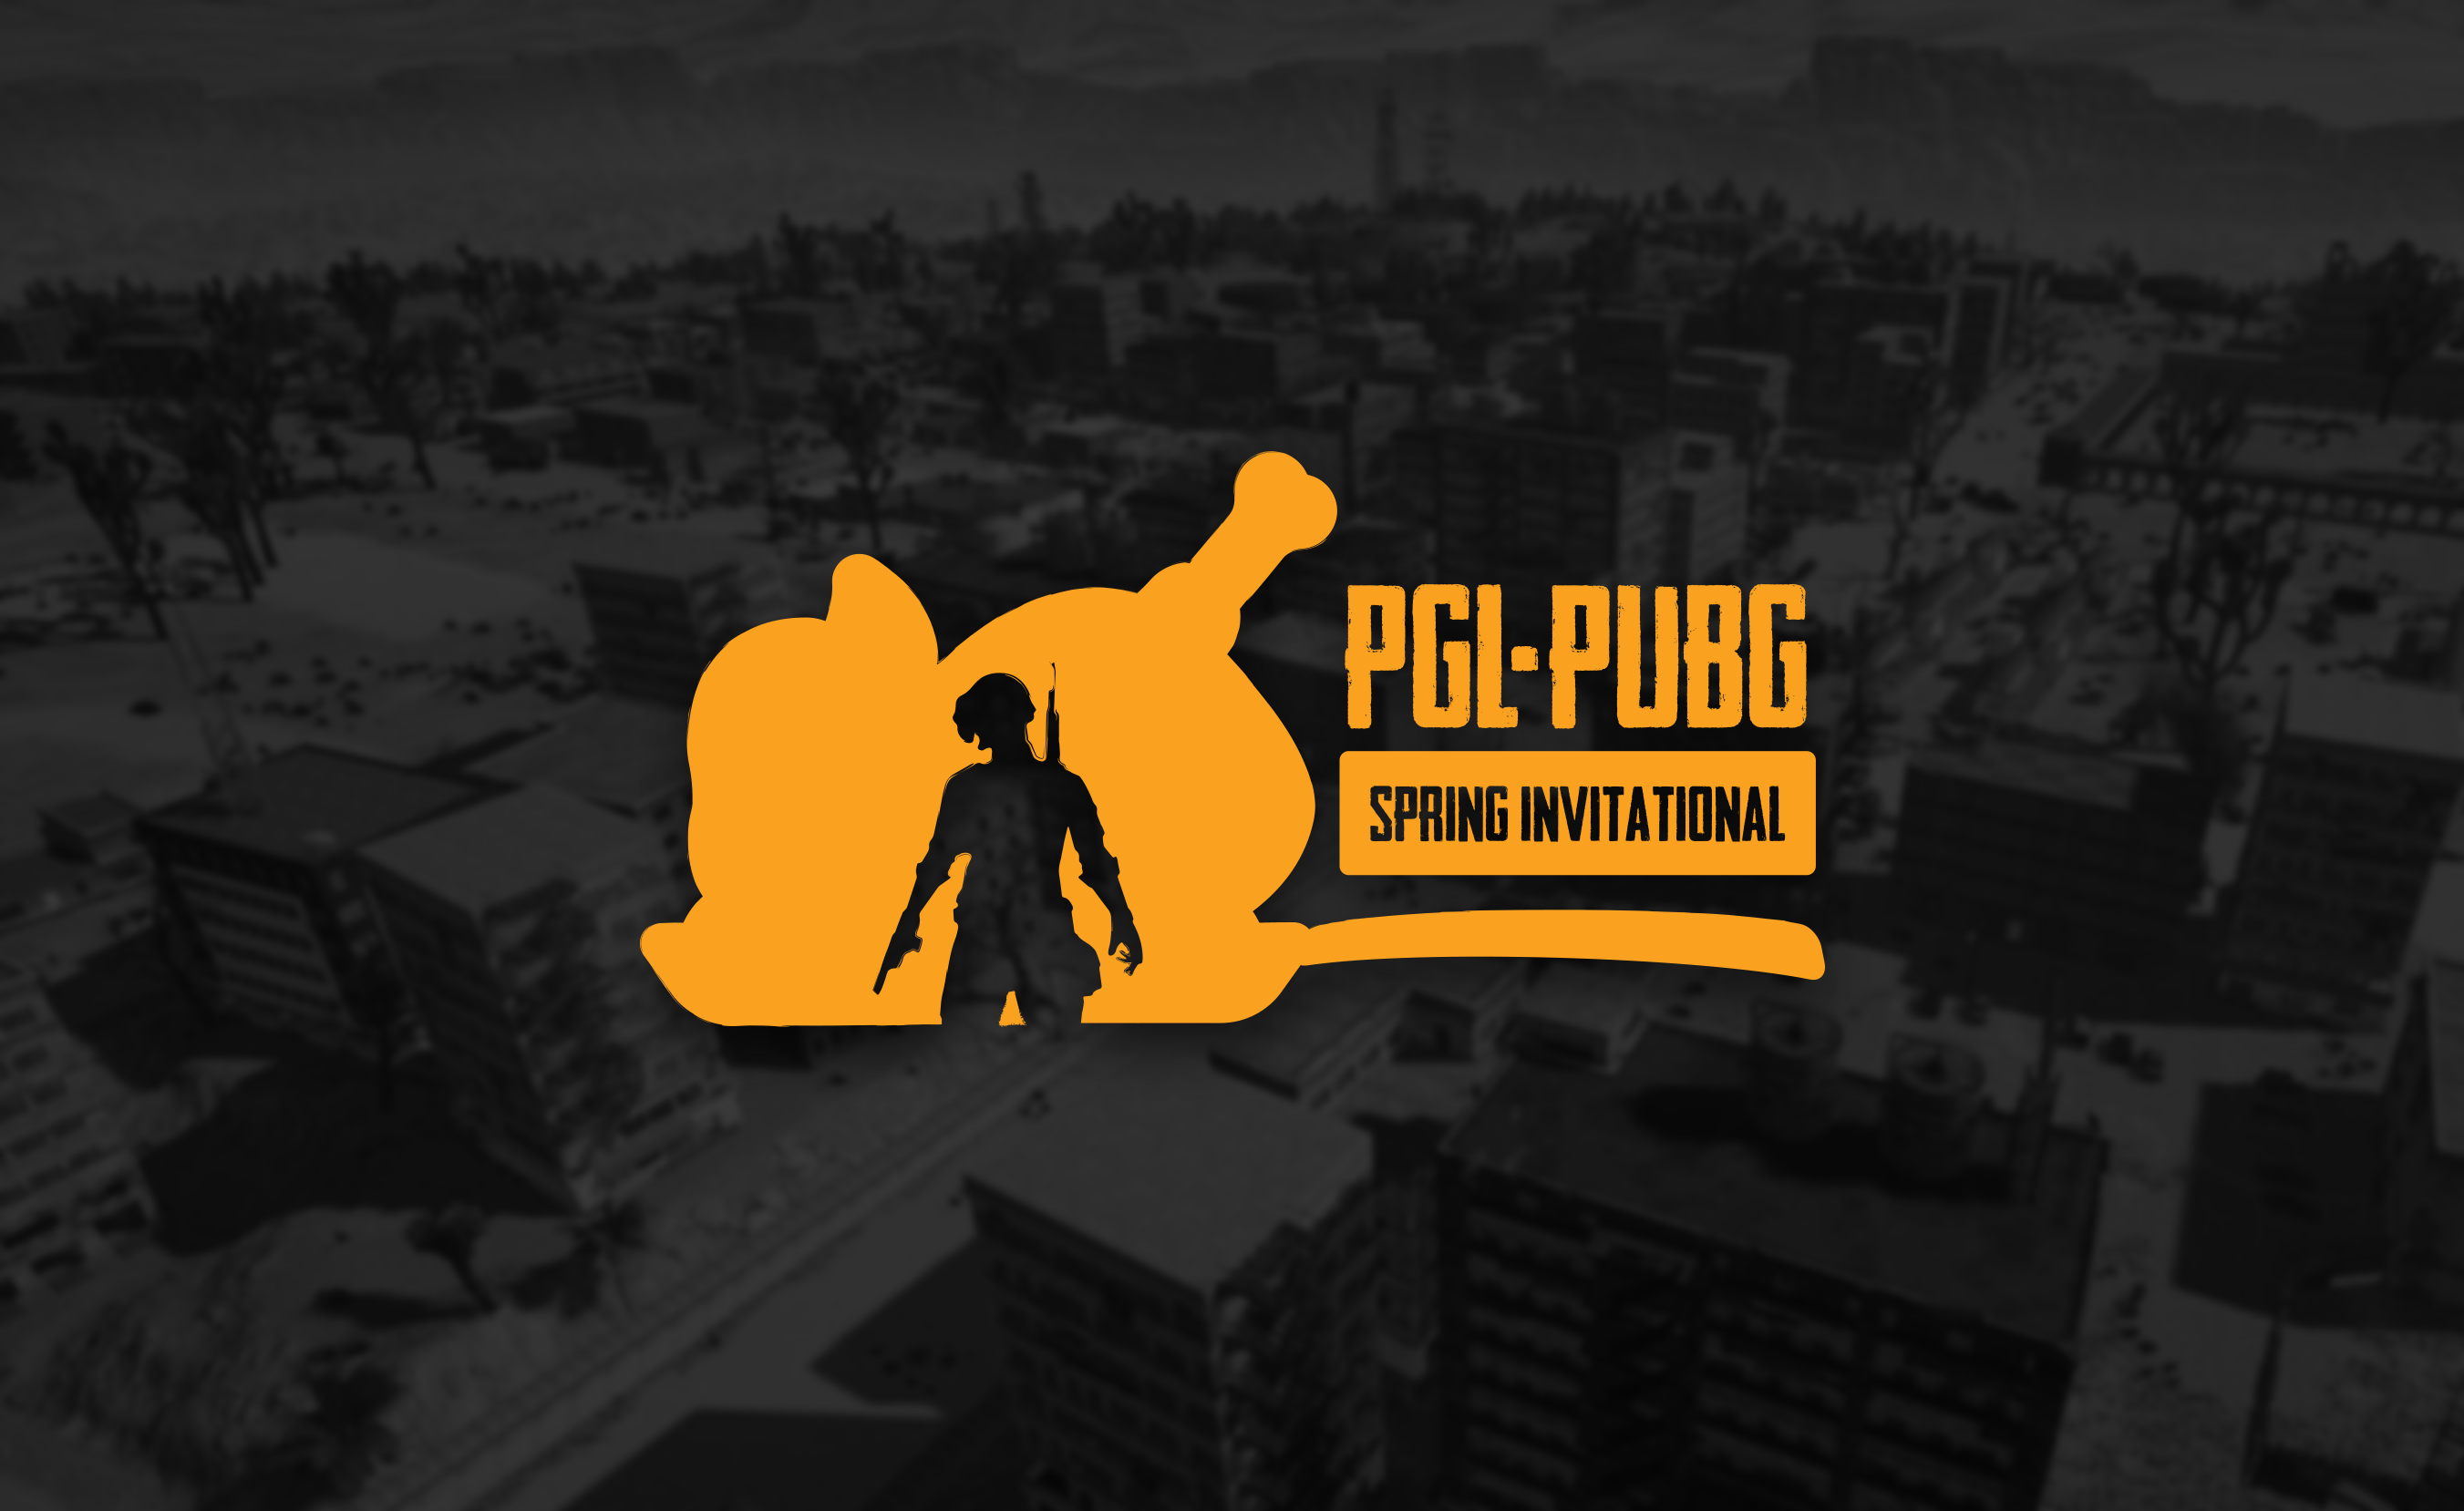 Pubg Wallpaper Creator: PGL PUBG Spring Invitational Takes Place March 22-25 In